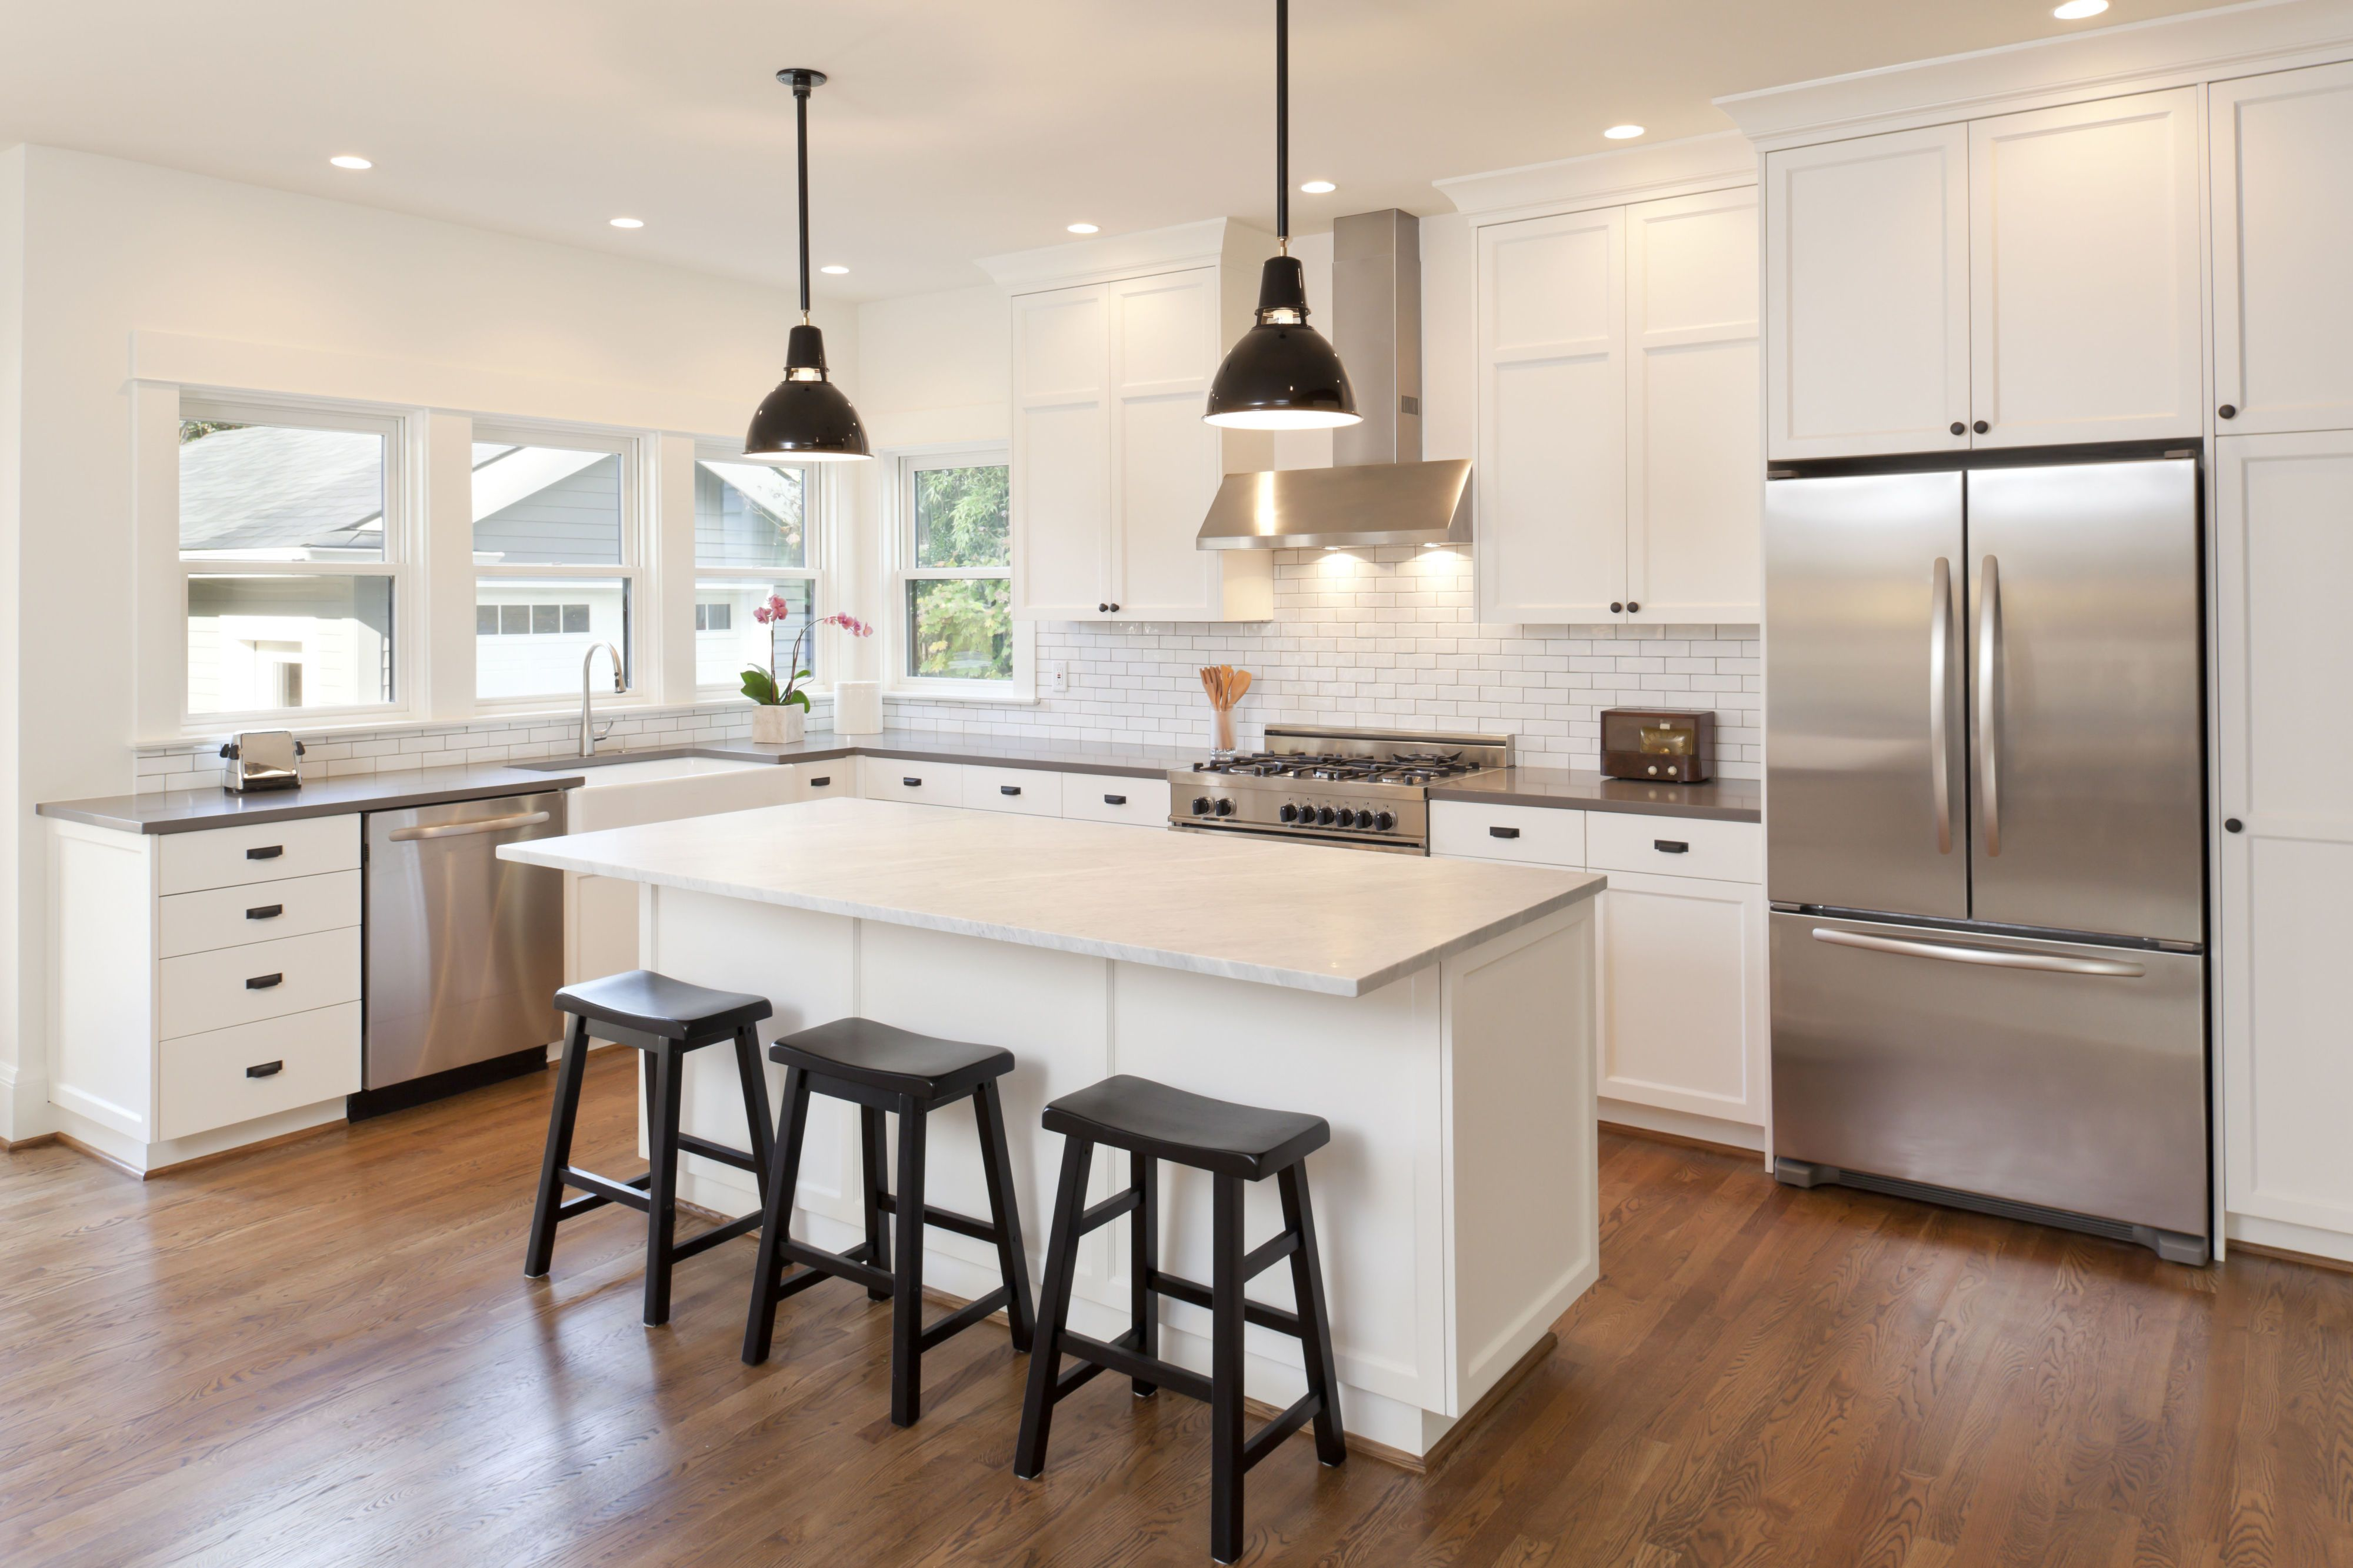 renovated kitchen hanging lighting fixtures for best cabinet ideas types of cabinets to choose how the